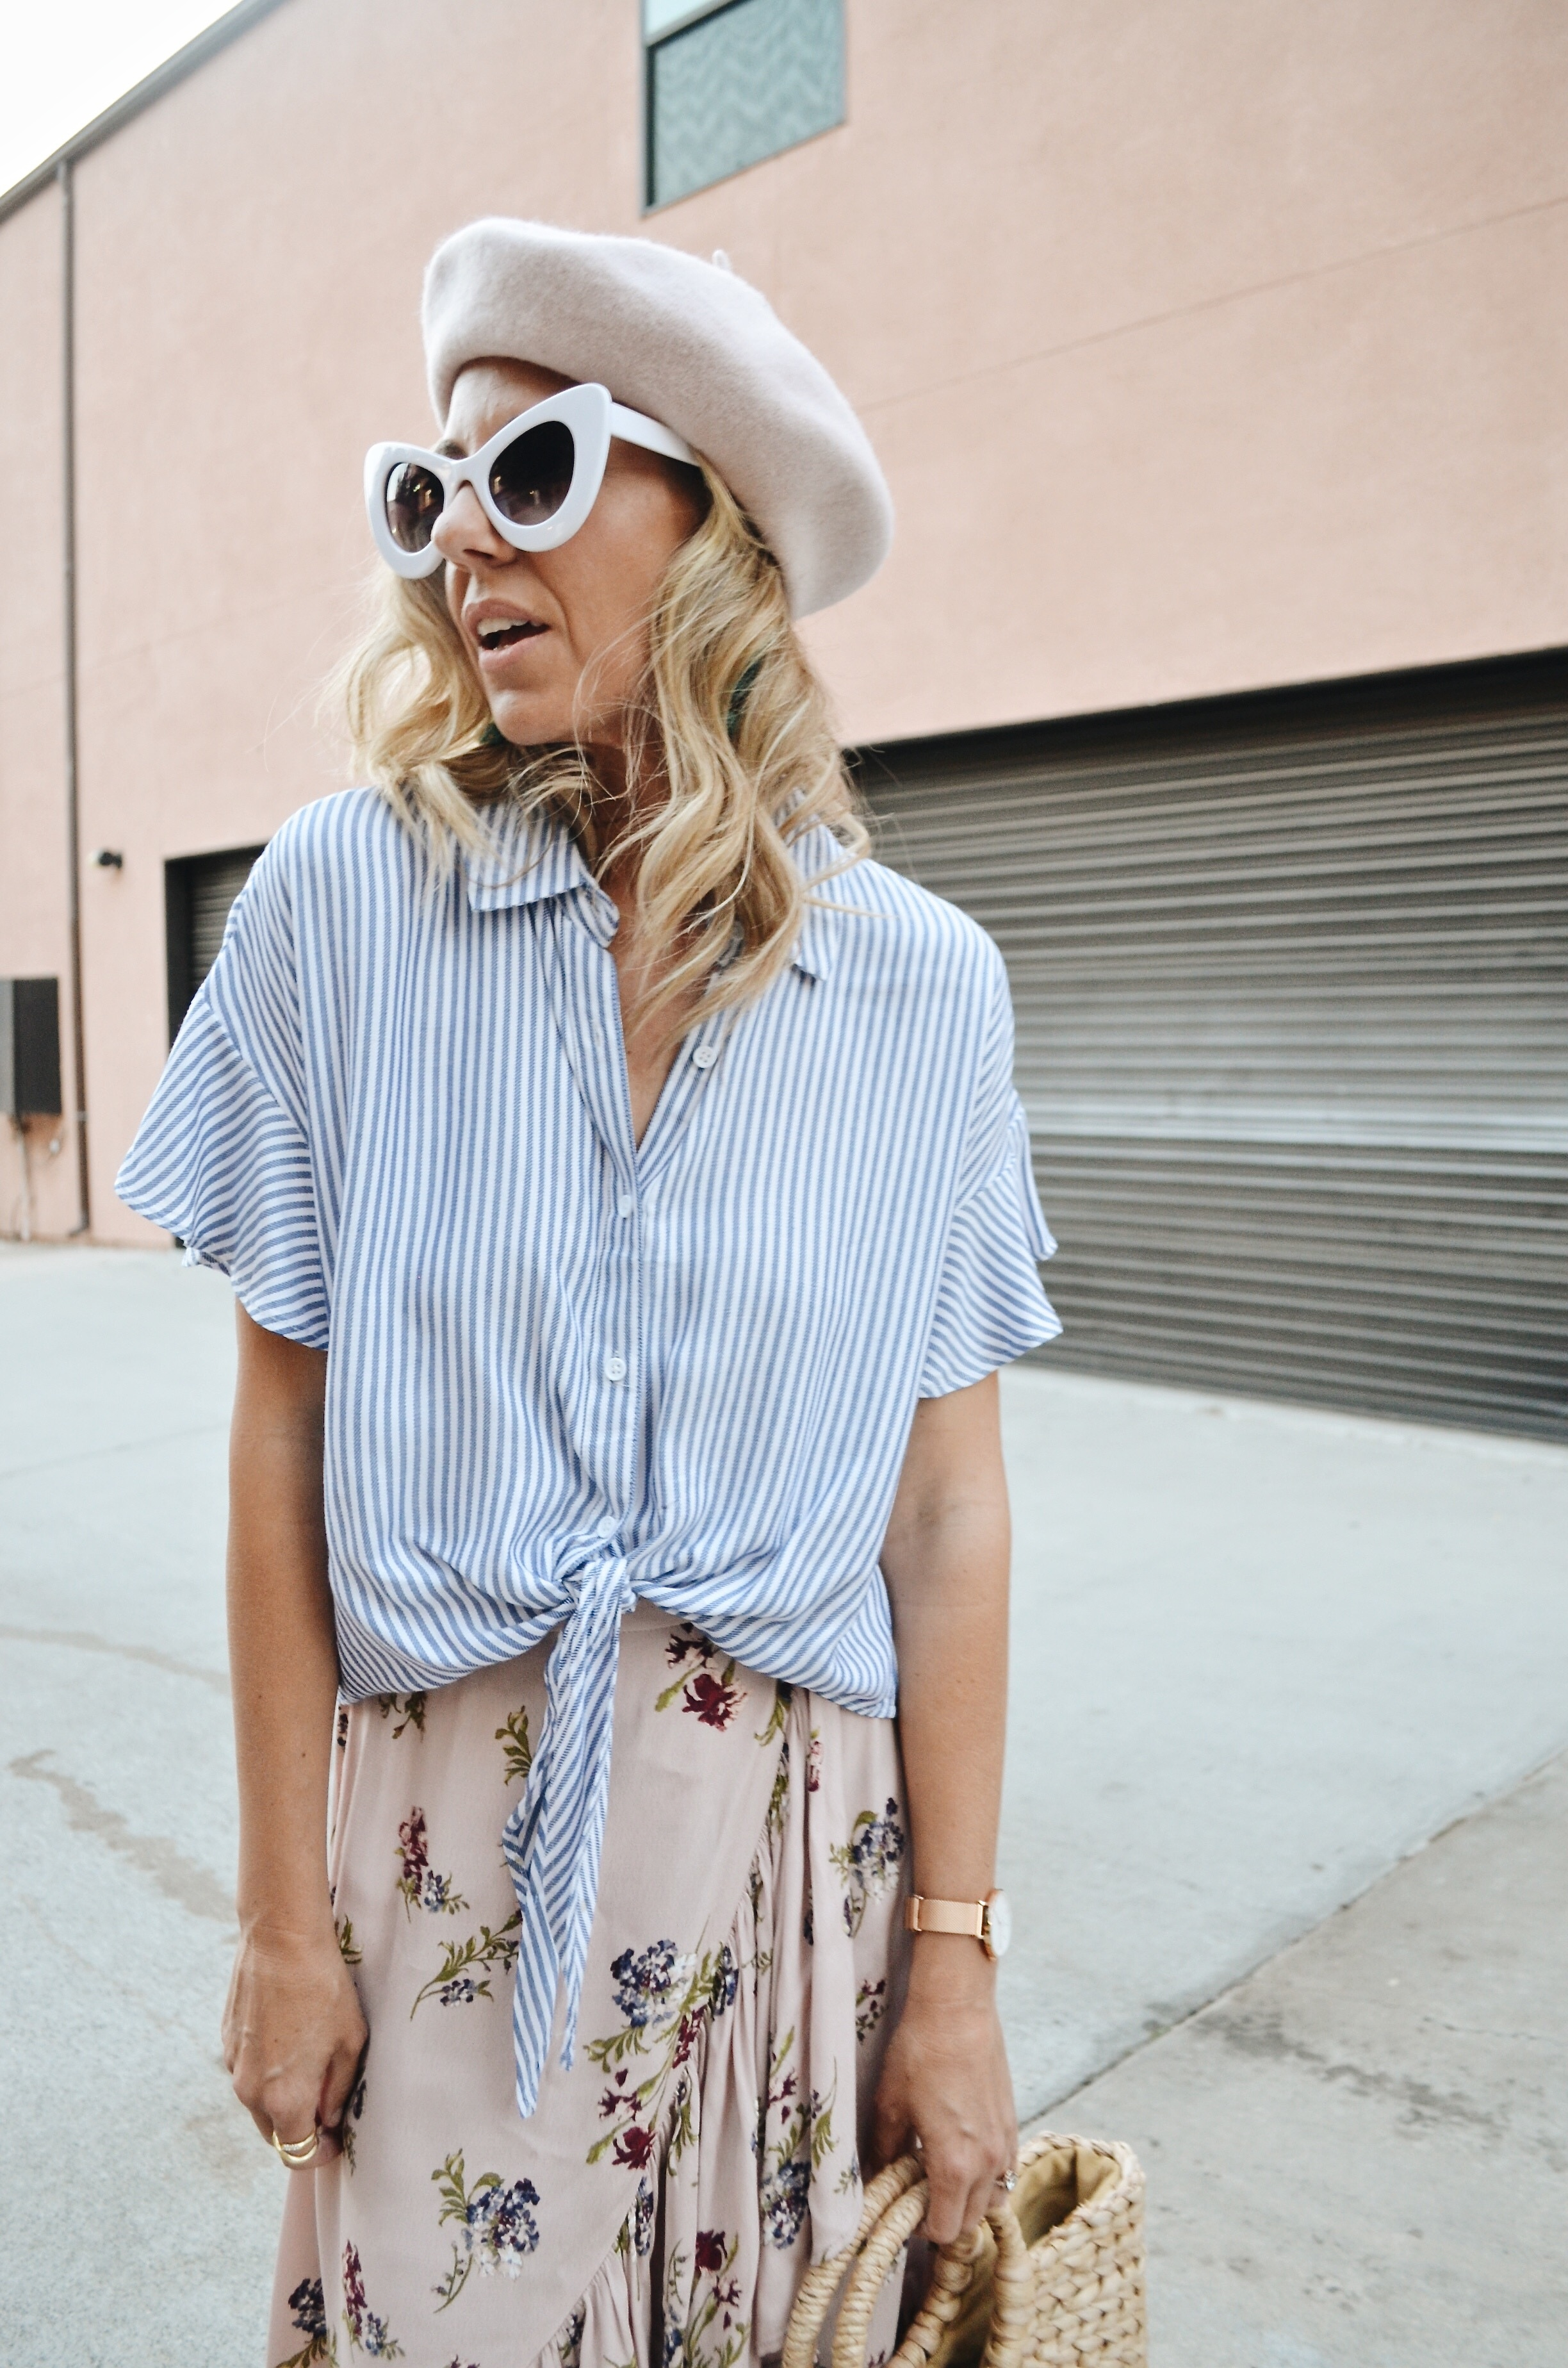 FLORAL + STRIPES - JACLYN DE LEON STYLE + striped top with ruffle sleeve + floral ruffle midi skirt + straw handbag + retro sunglasses + pink beret hat + spring outfit inspiration + street style